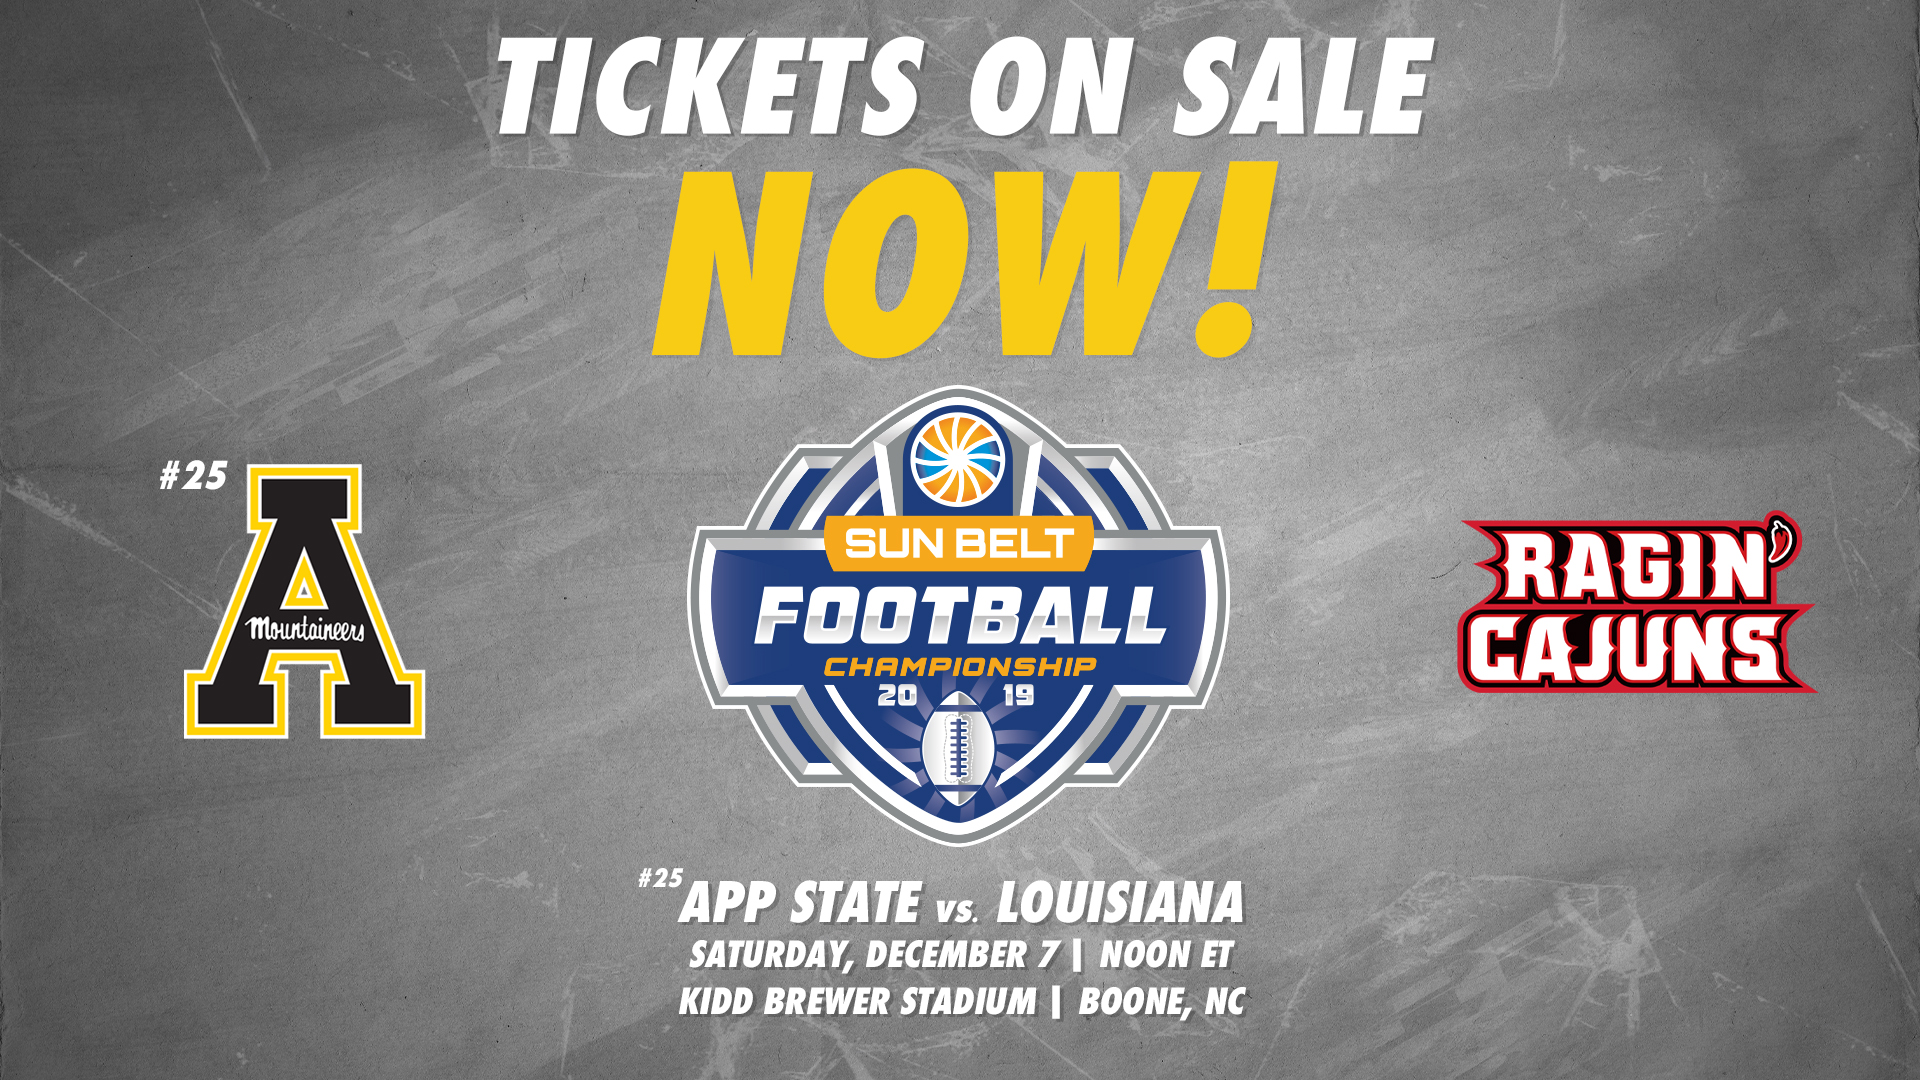 Sun Belt Championship Tickets On Sale Now To General Public App State Athletics